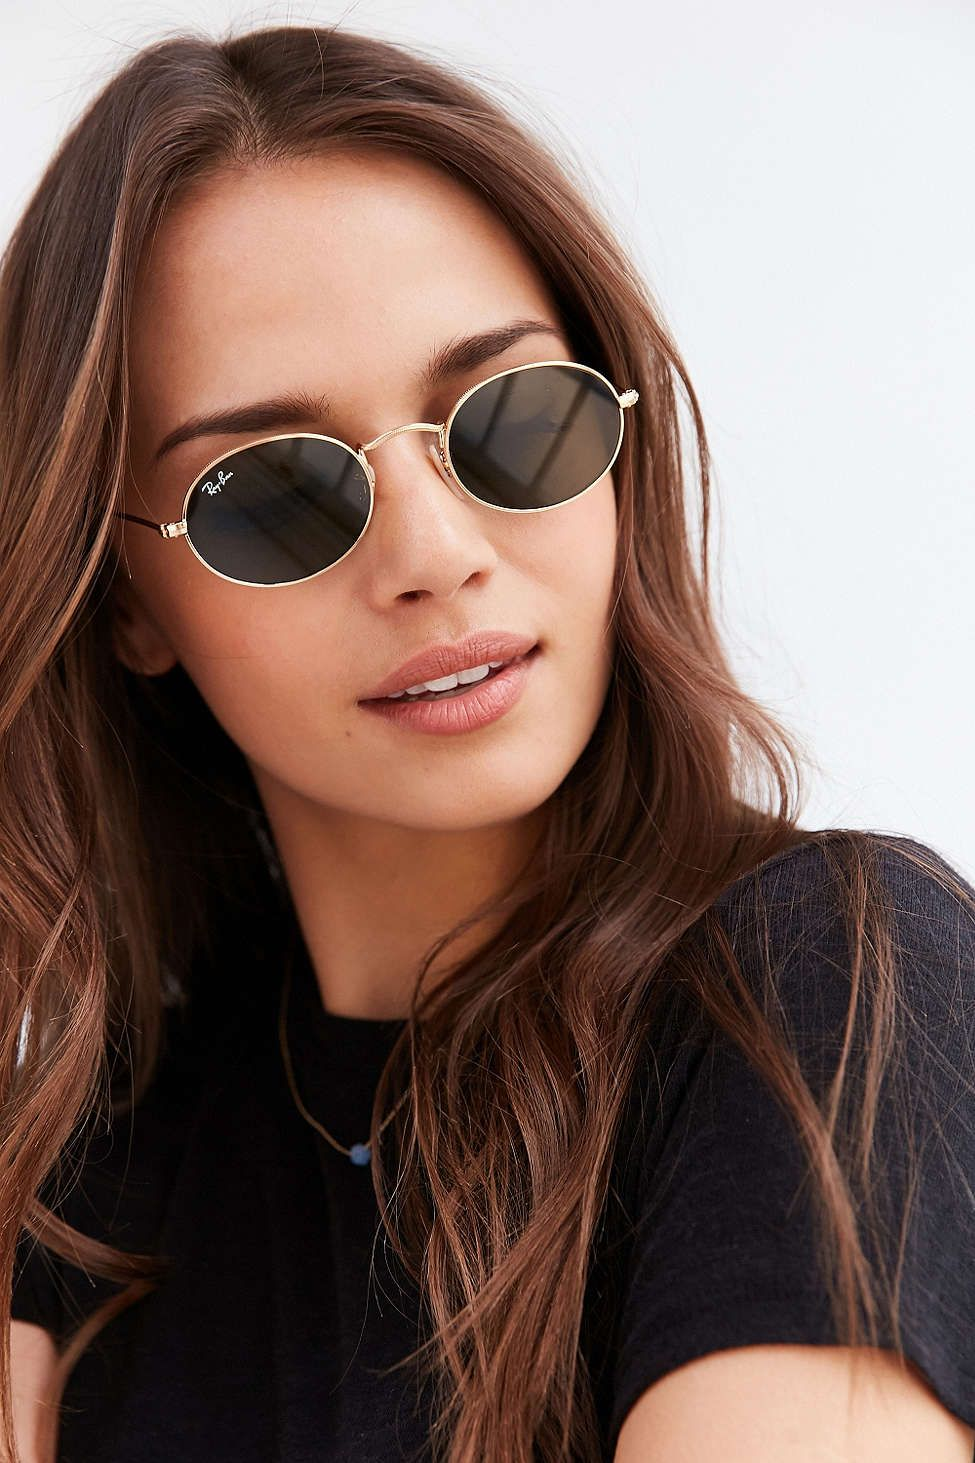 65a5518f9e5e5a Ray-Ban Icon Oval Flat Lens Sunglasses - Urban Outfitters   Runway ...